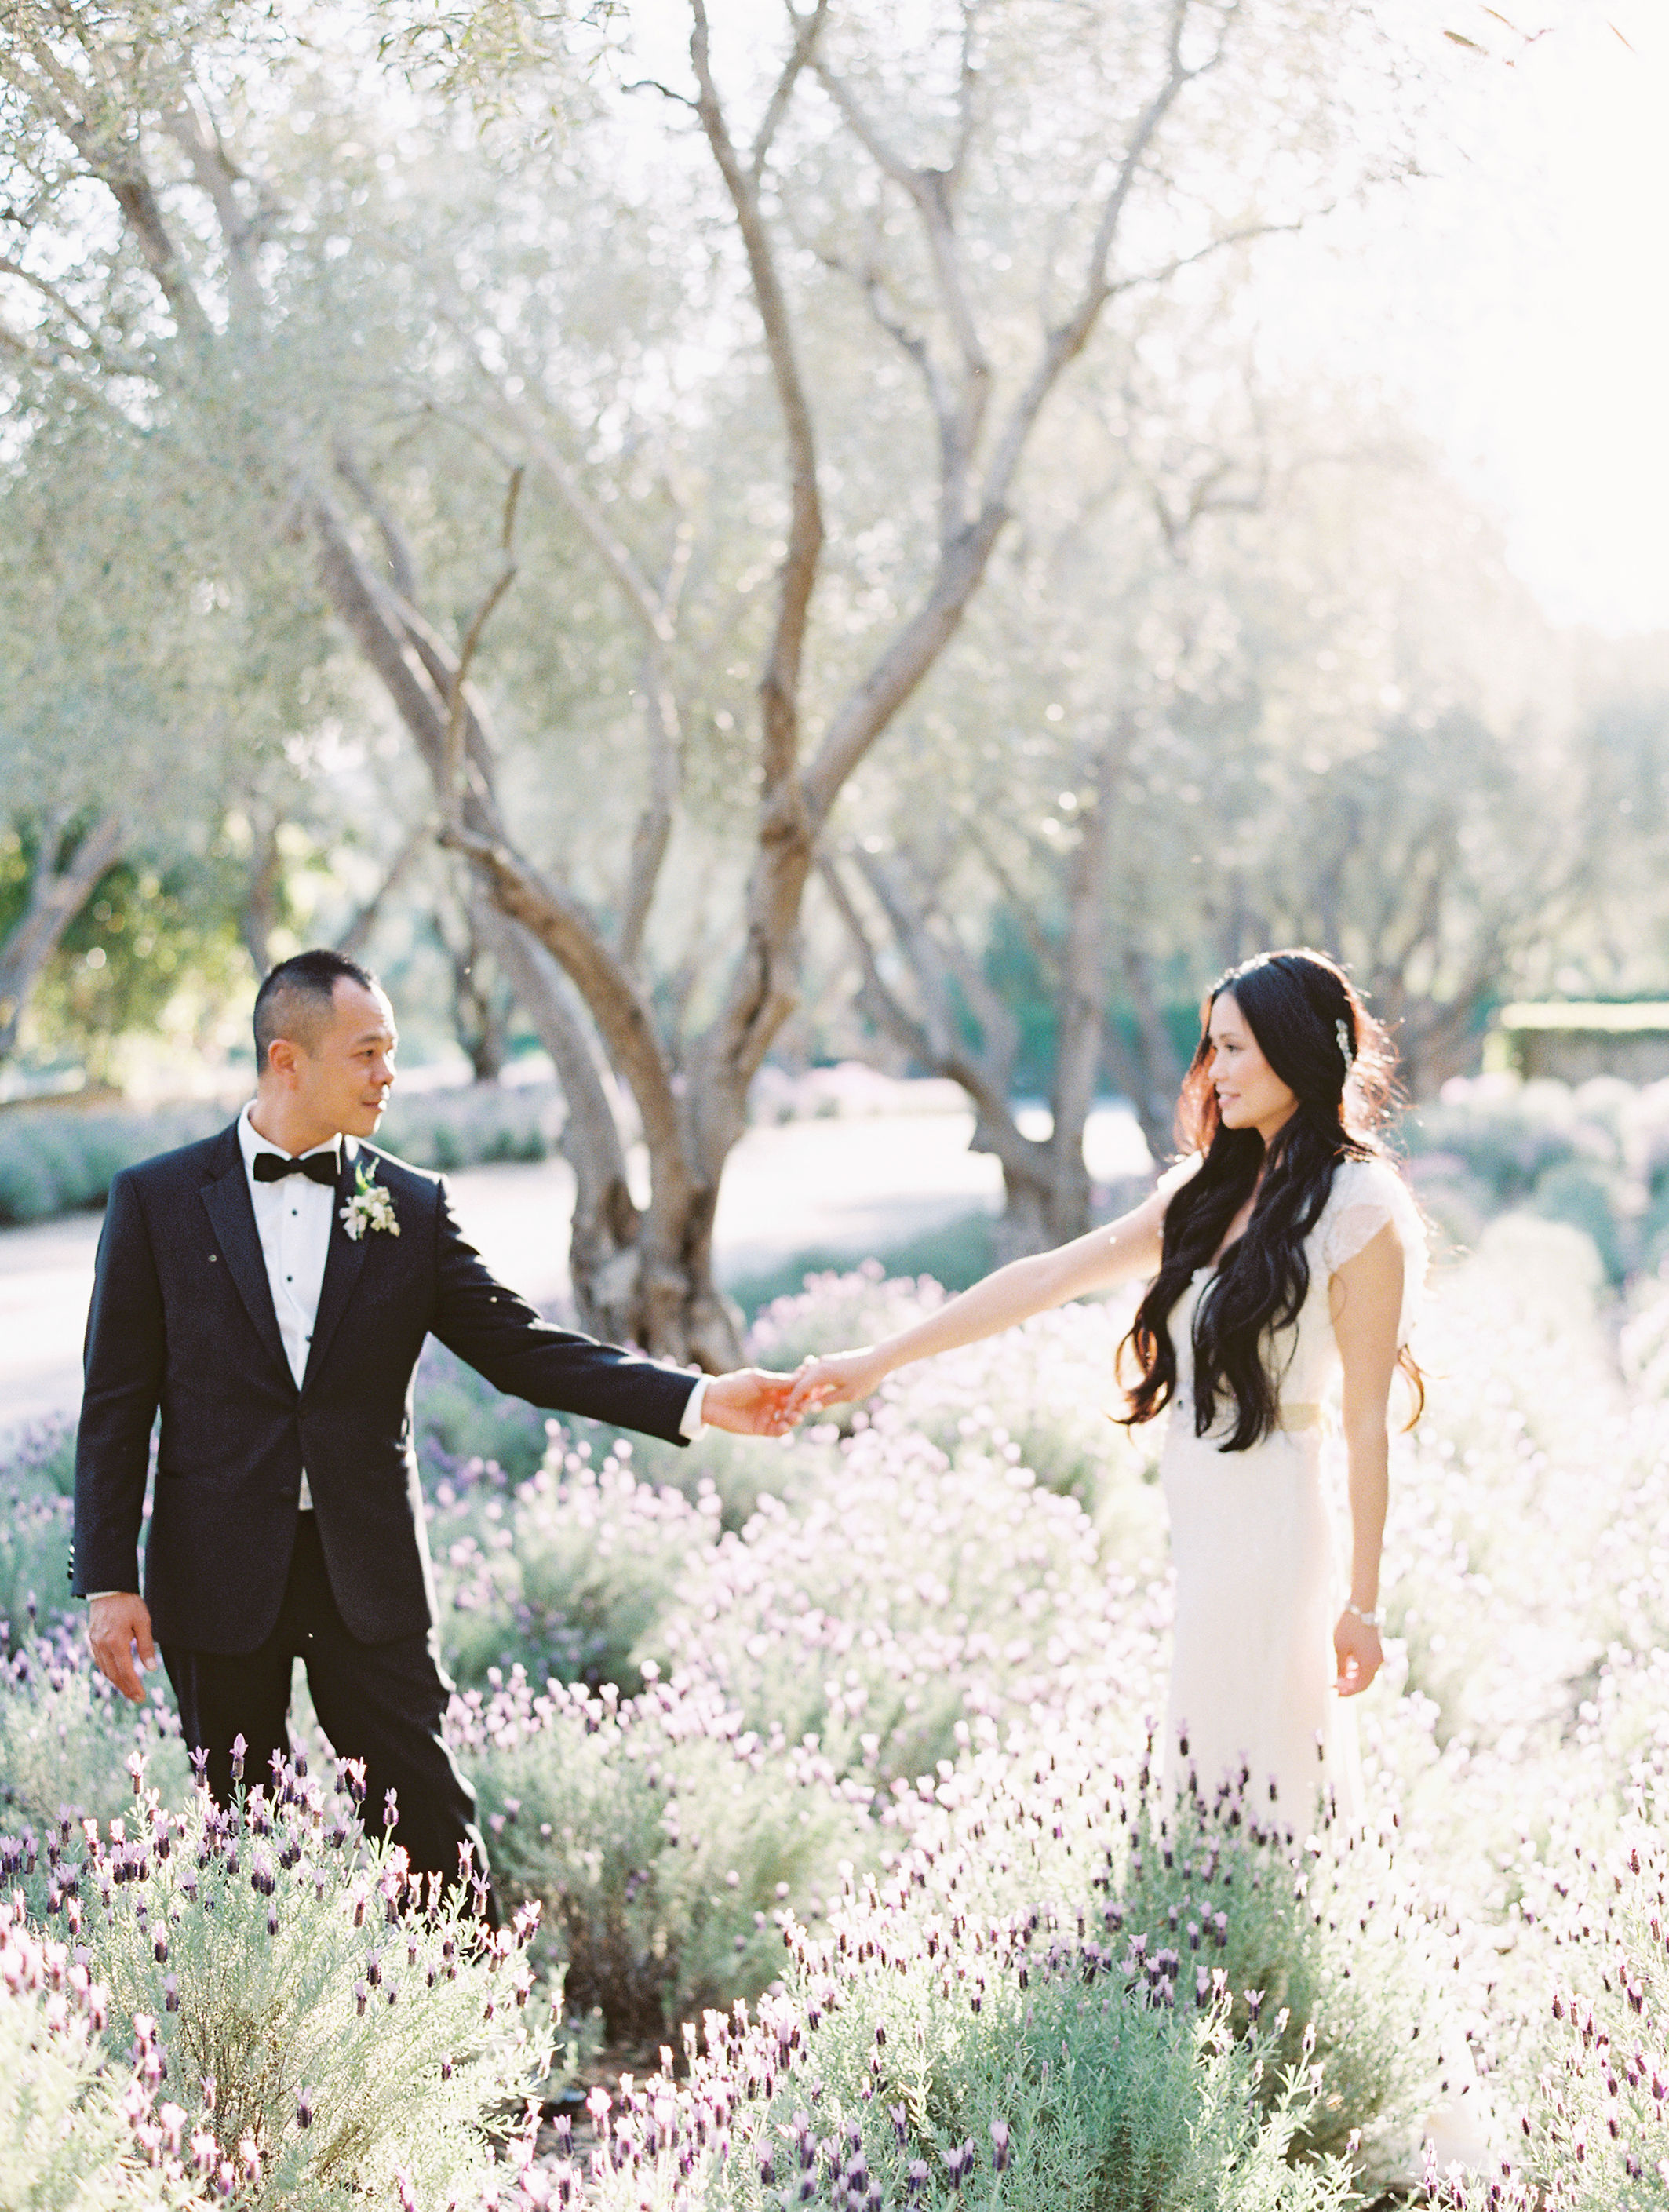 bride and groom holding hands in field of flowers